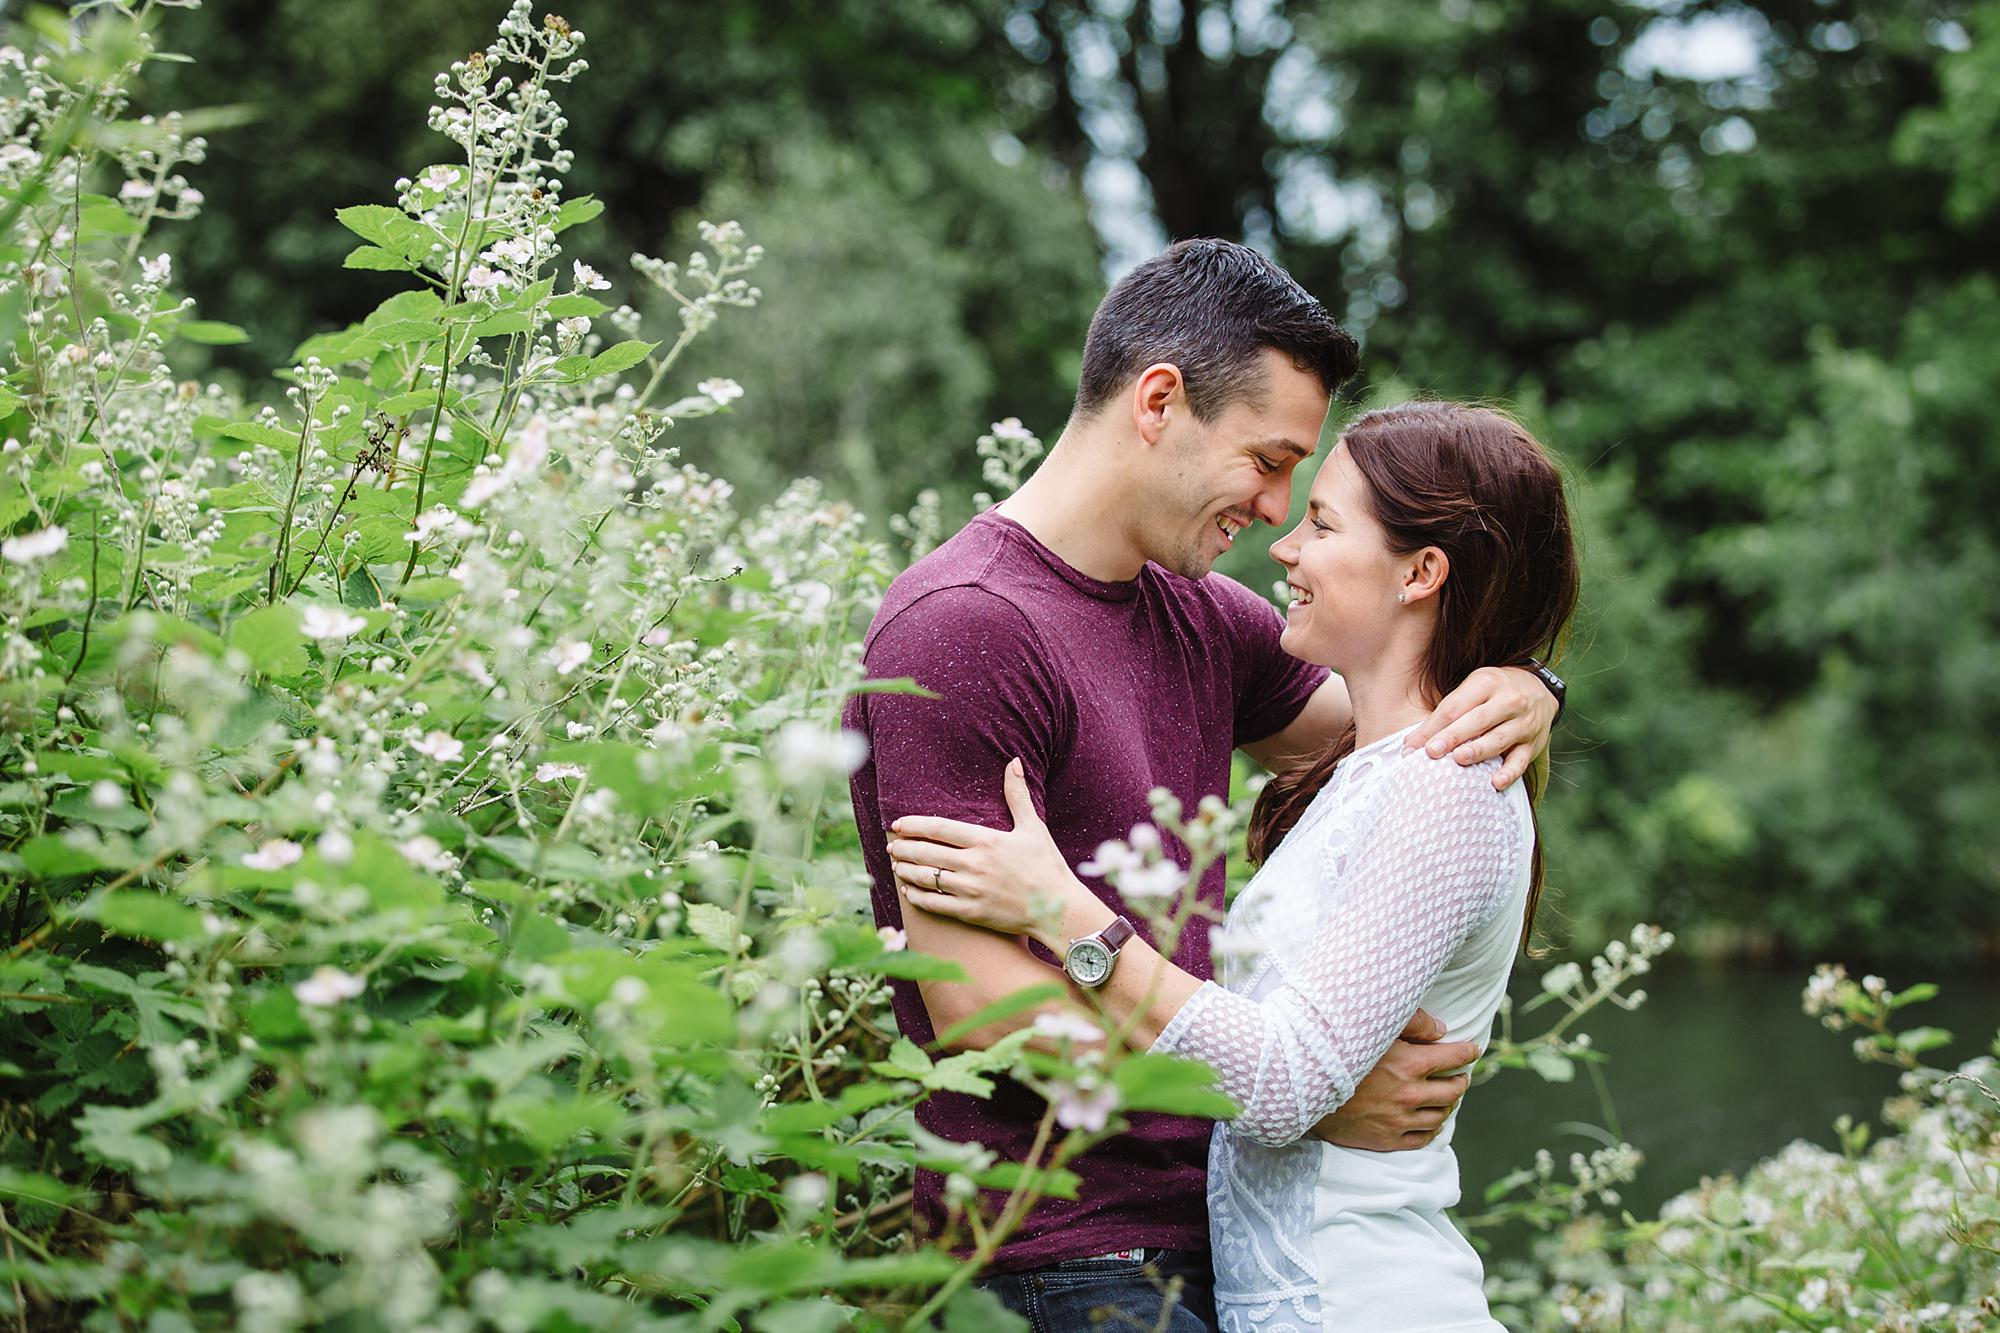 Countryside engagement photography - portrait of a couple hugging in the countryside